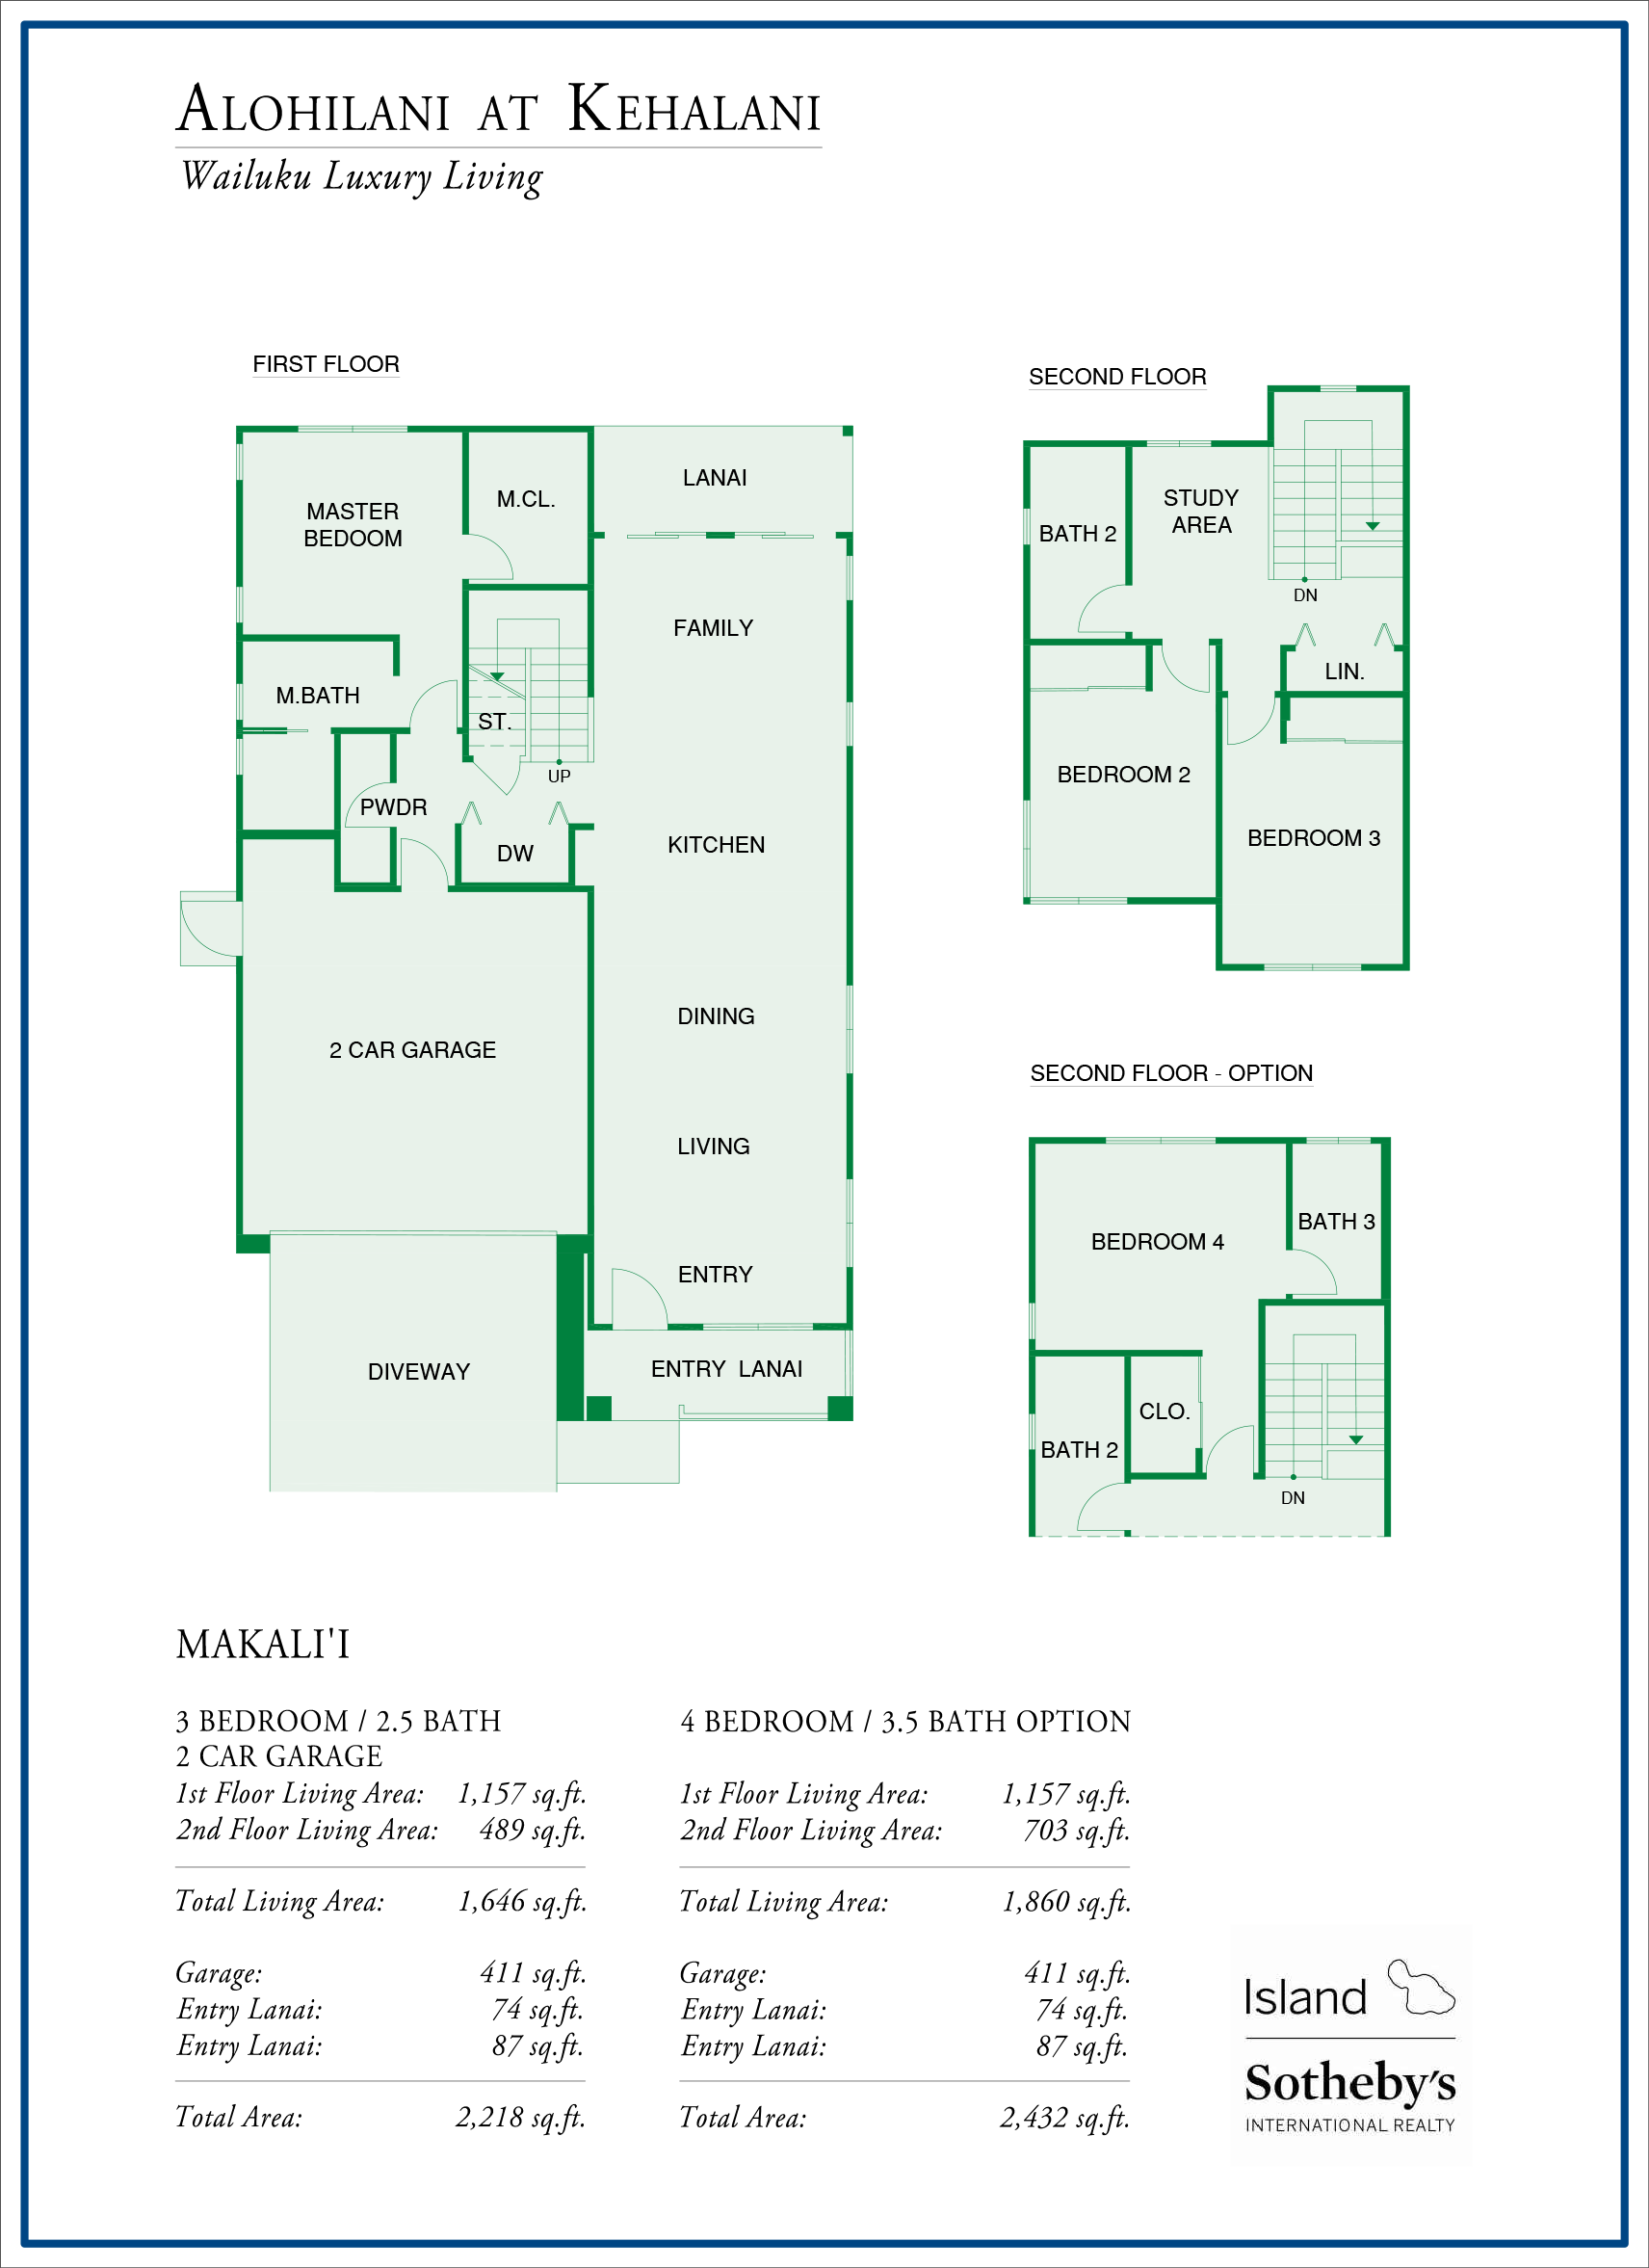 map and floor plan ke alohilani wailuku